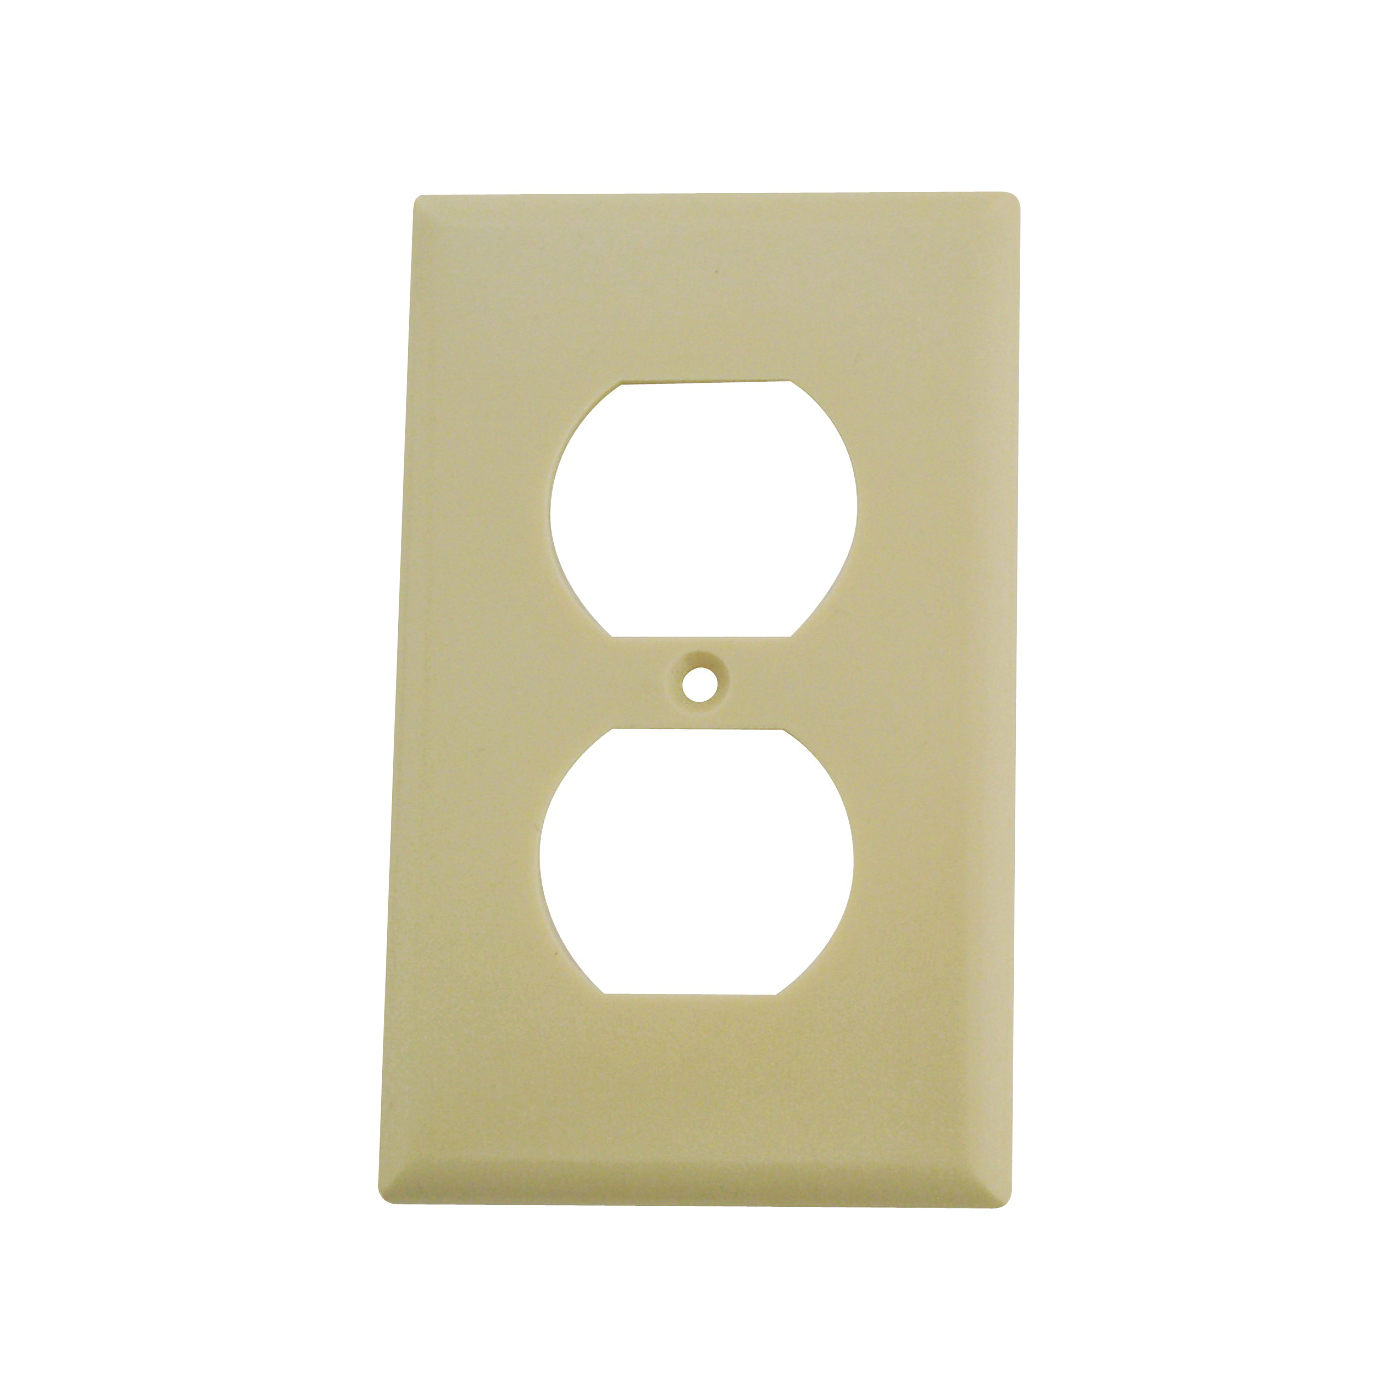 Picture of Eaton Wiring Devices 2132V-BOX Duplex Receptacle Wallplate, 4-1/2 in L, 2-3/4 in W, 1-Gang, Thermoset, Ivory